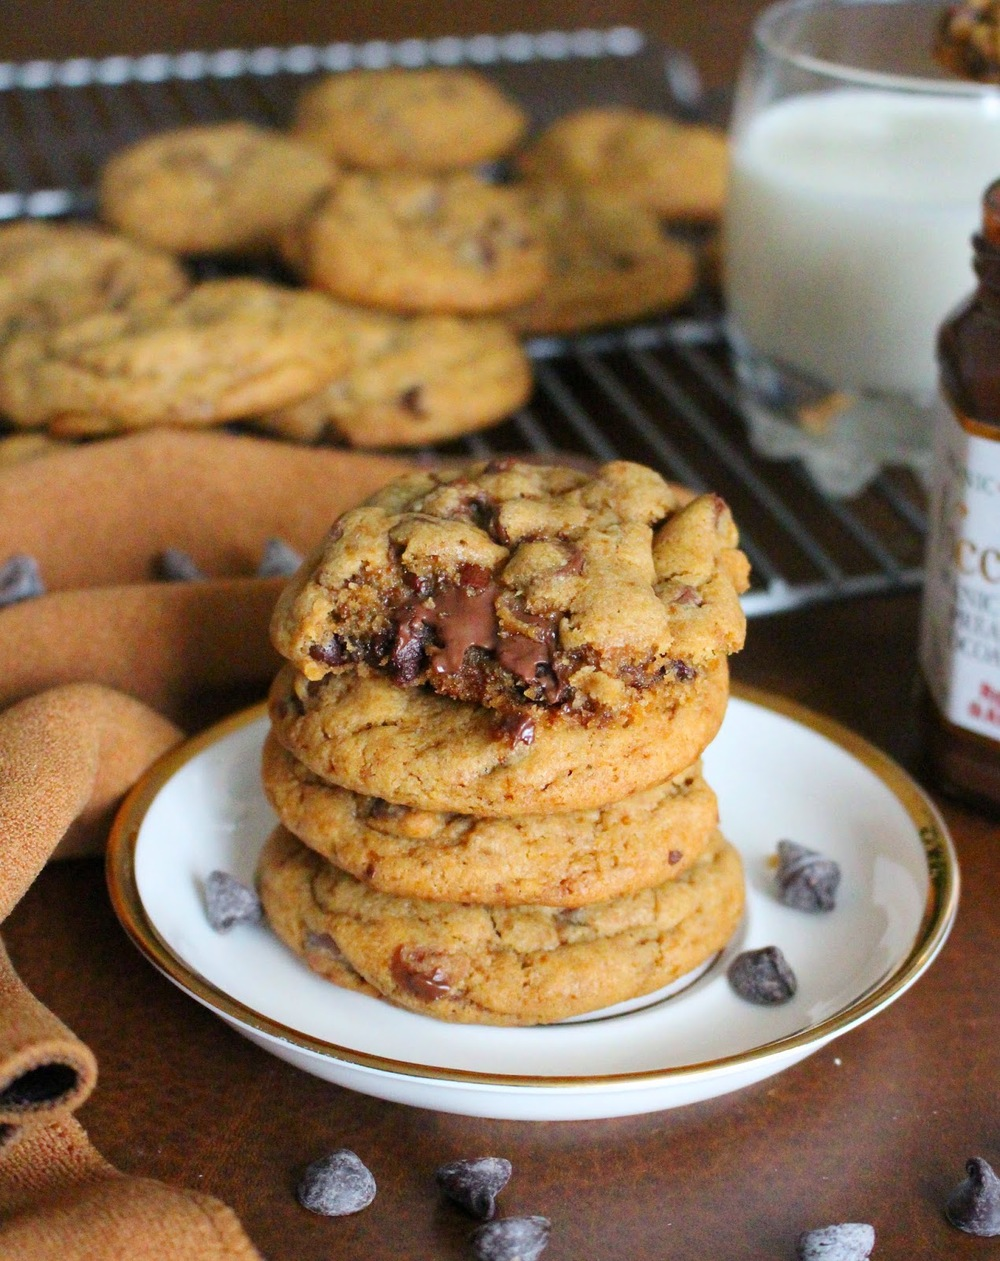 Stuffed+Chocolate+Chip+Cookies+040.e.JPG